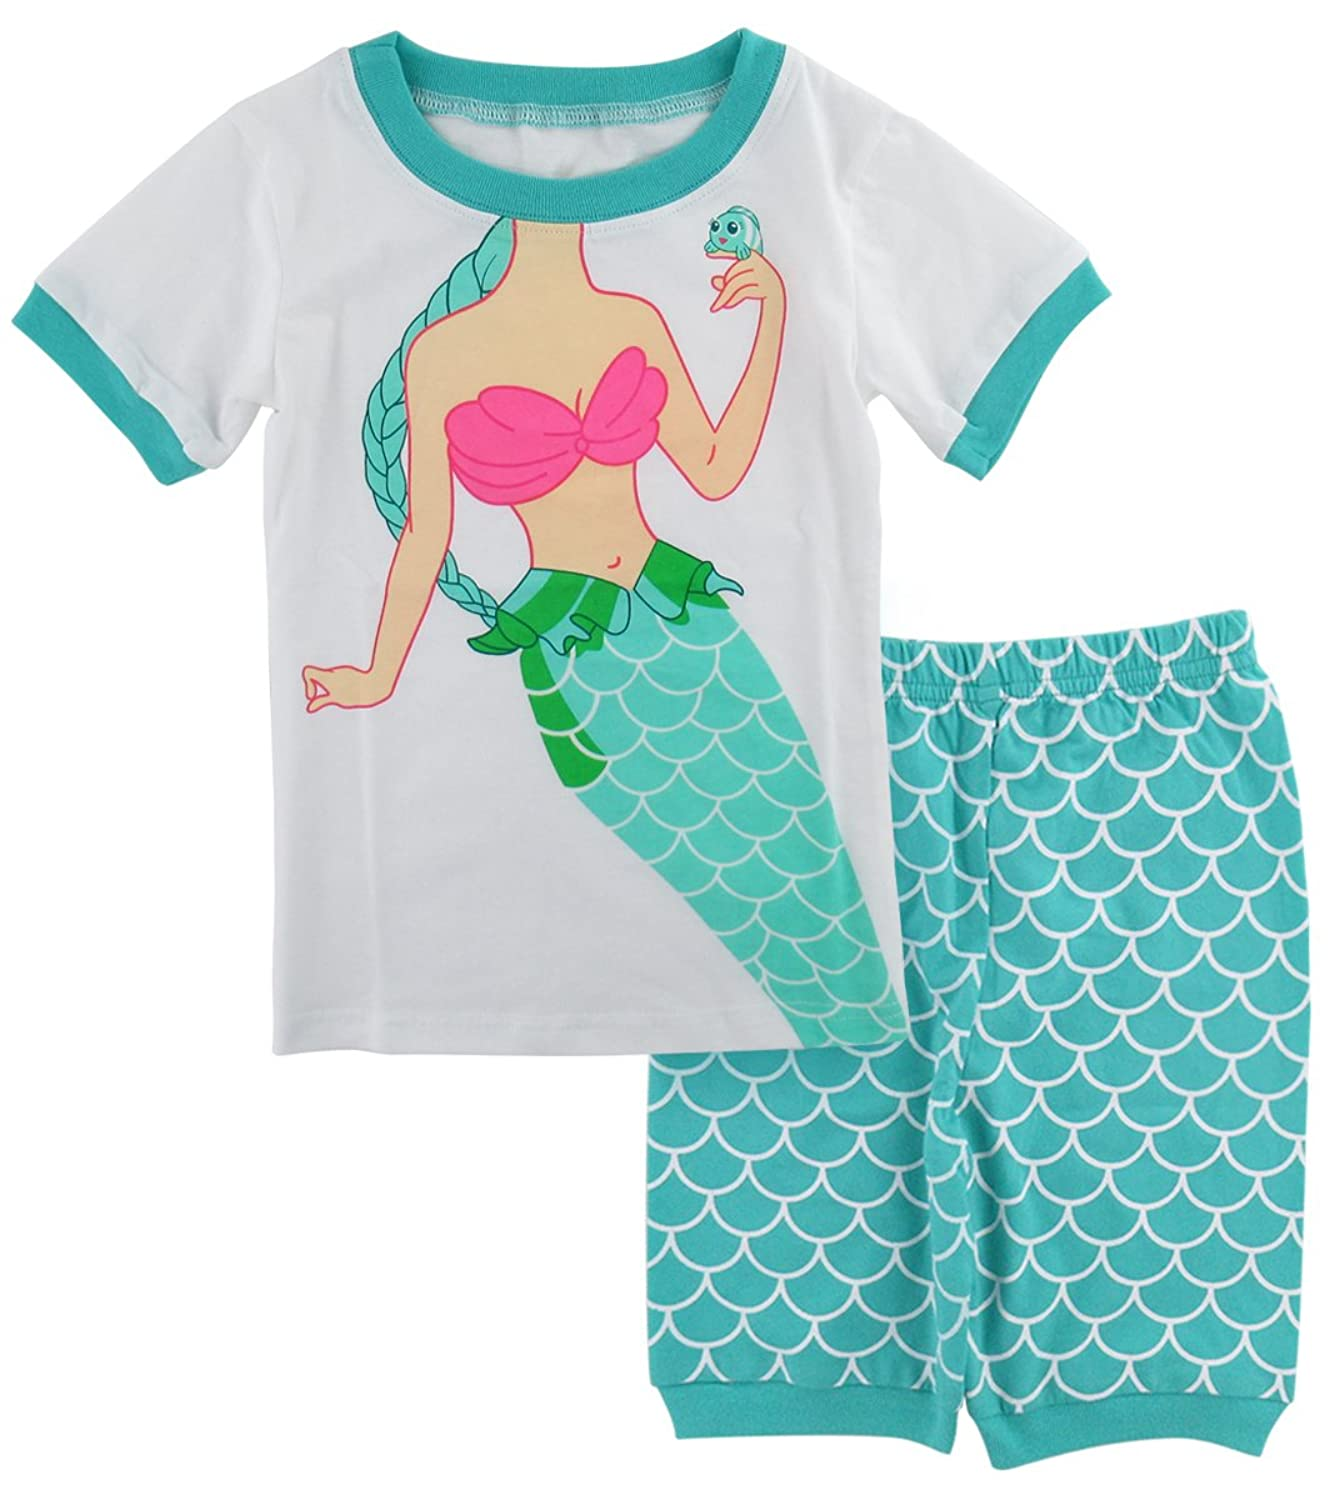 e31312cd53c4d AJDesign Kids Girls Mermaid Pajamas Short Sleeve Summer 2 Piece Sets (6,  Green)